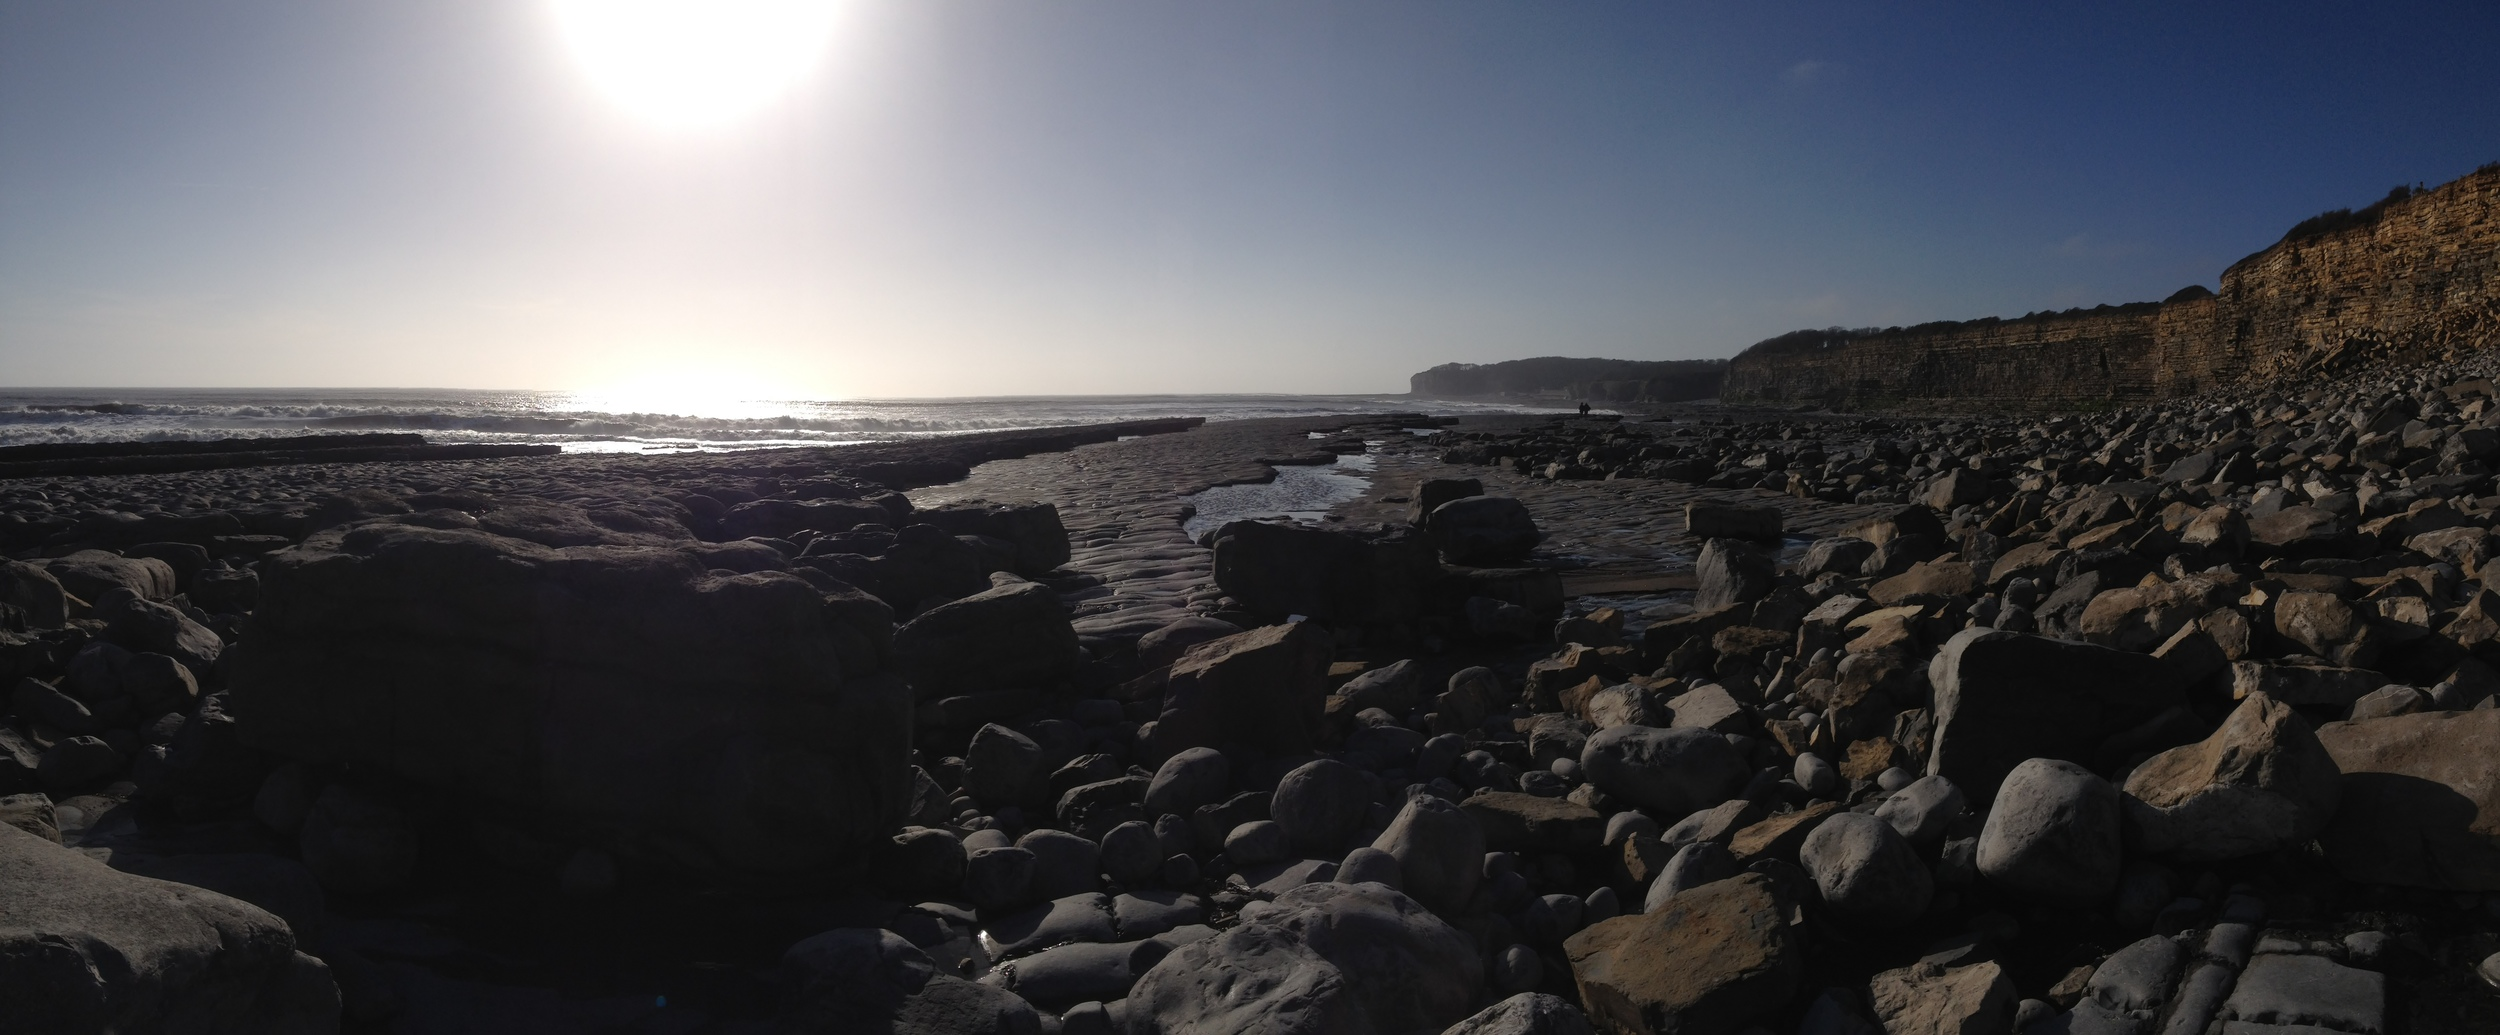 I recently visited Llantwit Major and Atlantic College, for the first time in almost 12 years.